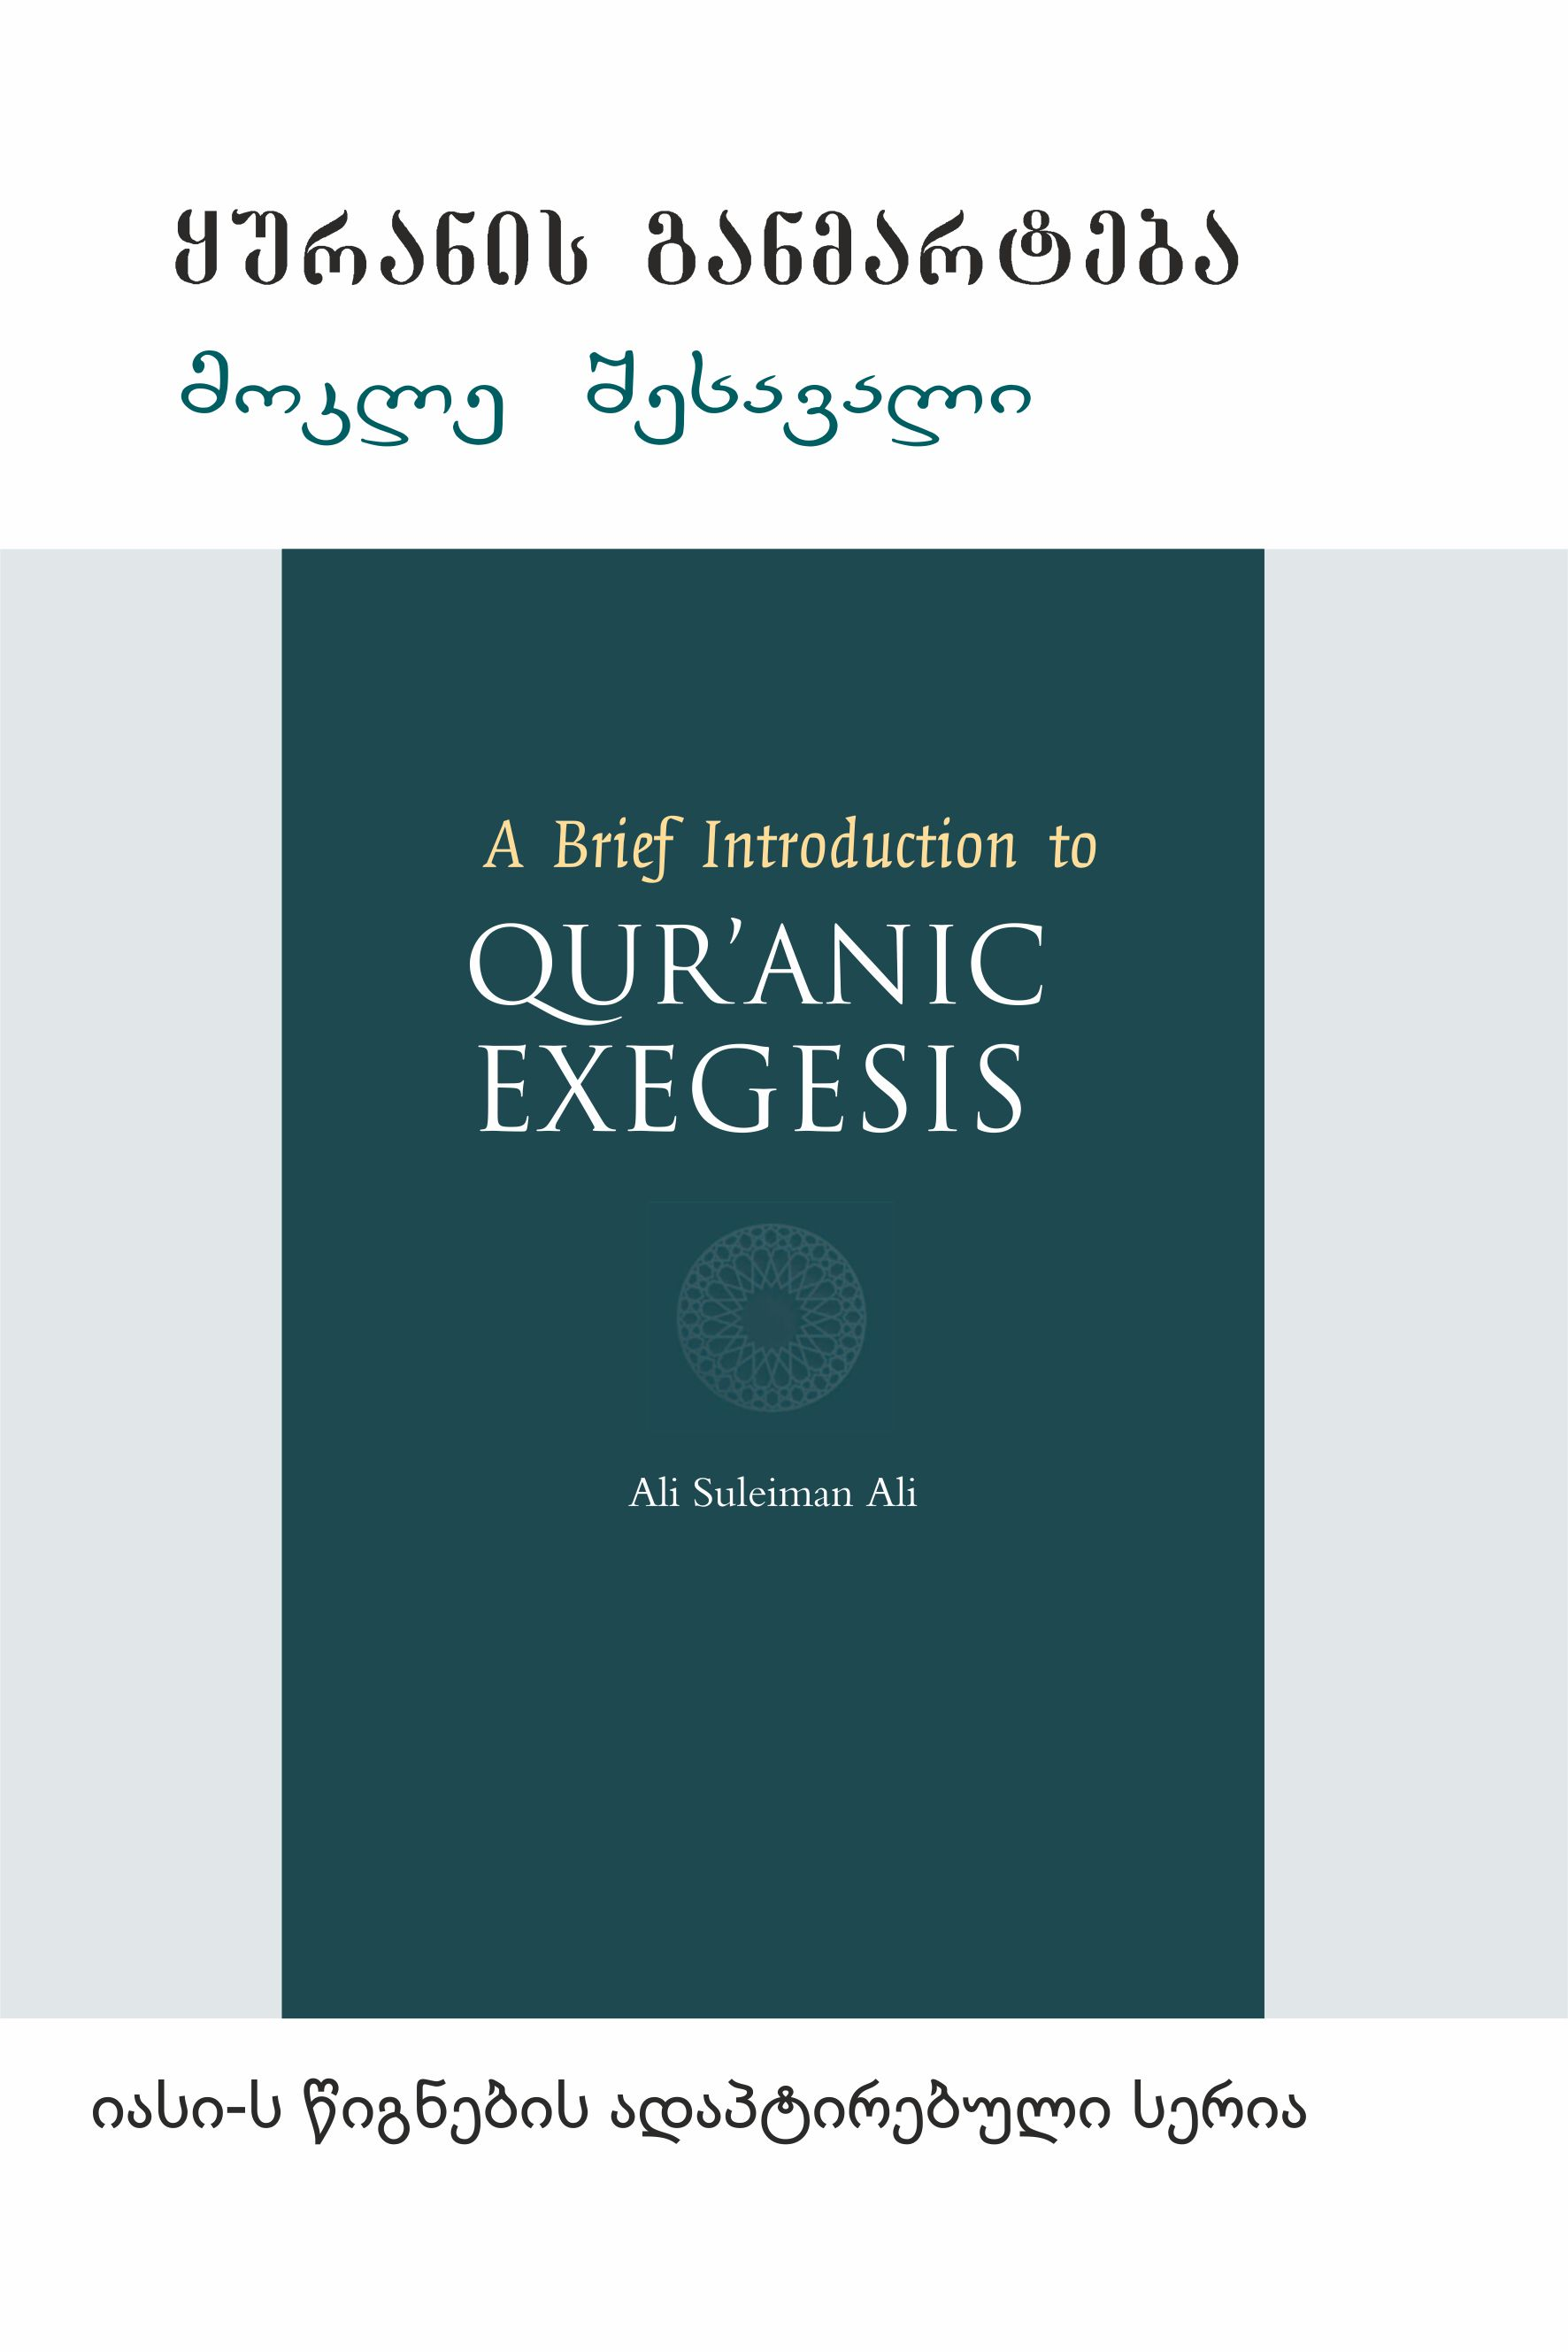 A Brief Introduction to Qur'anic Exegesis by Ali Suleiman Ali